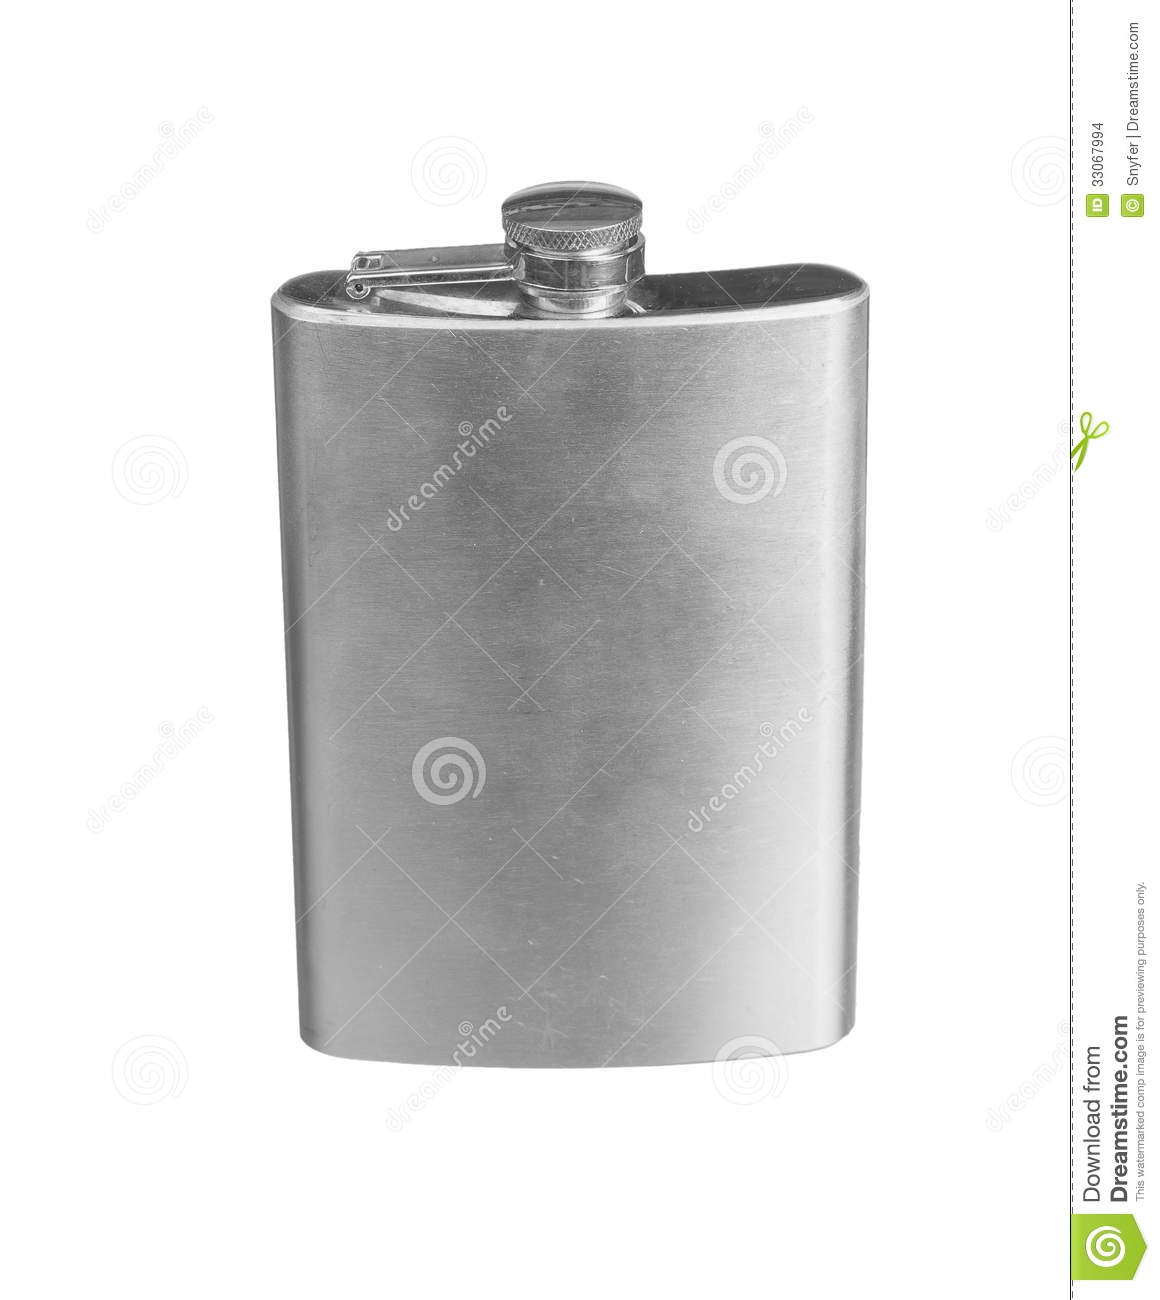 how to clean a hip flask